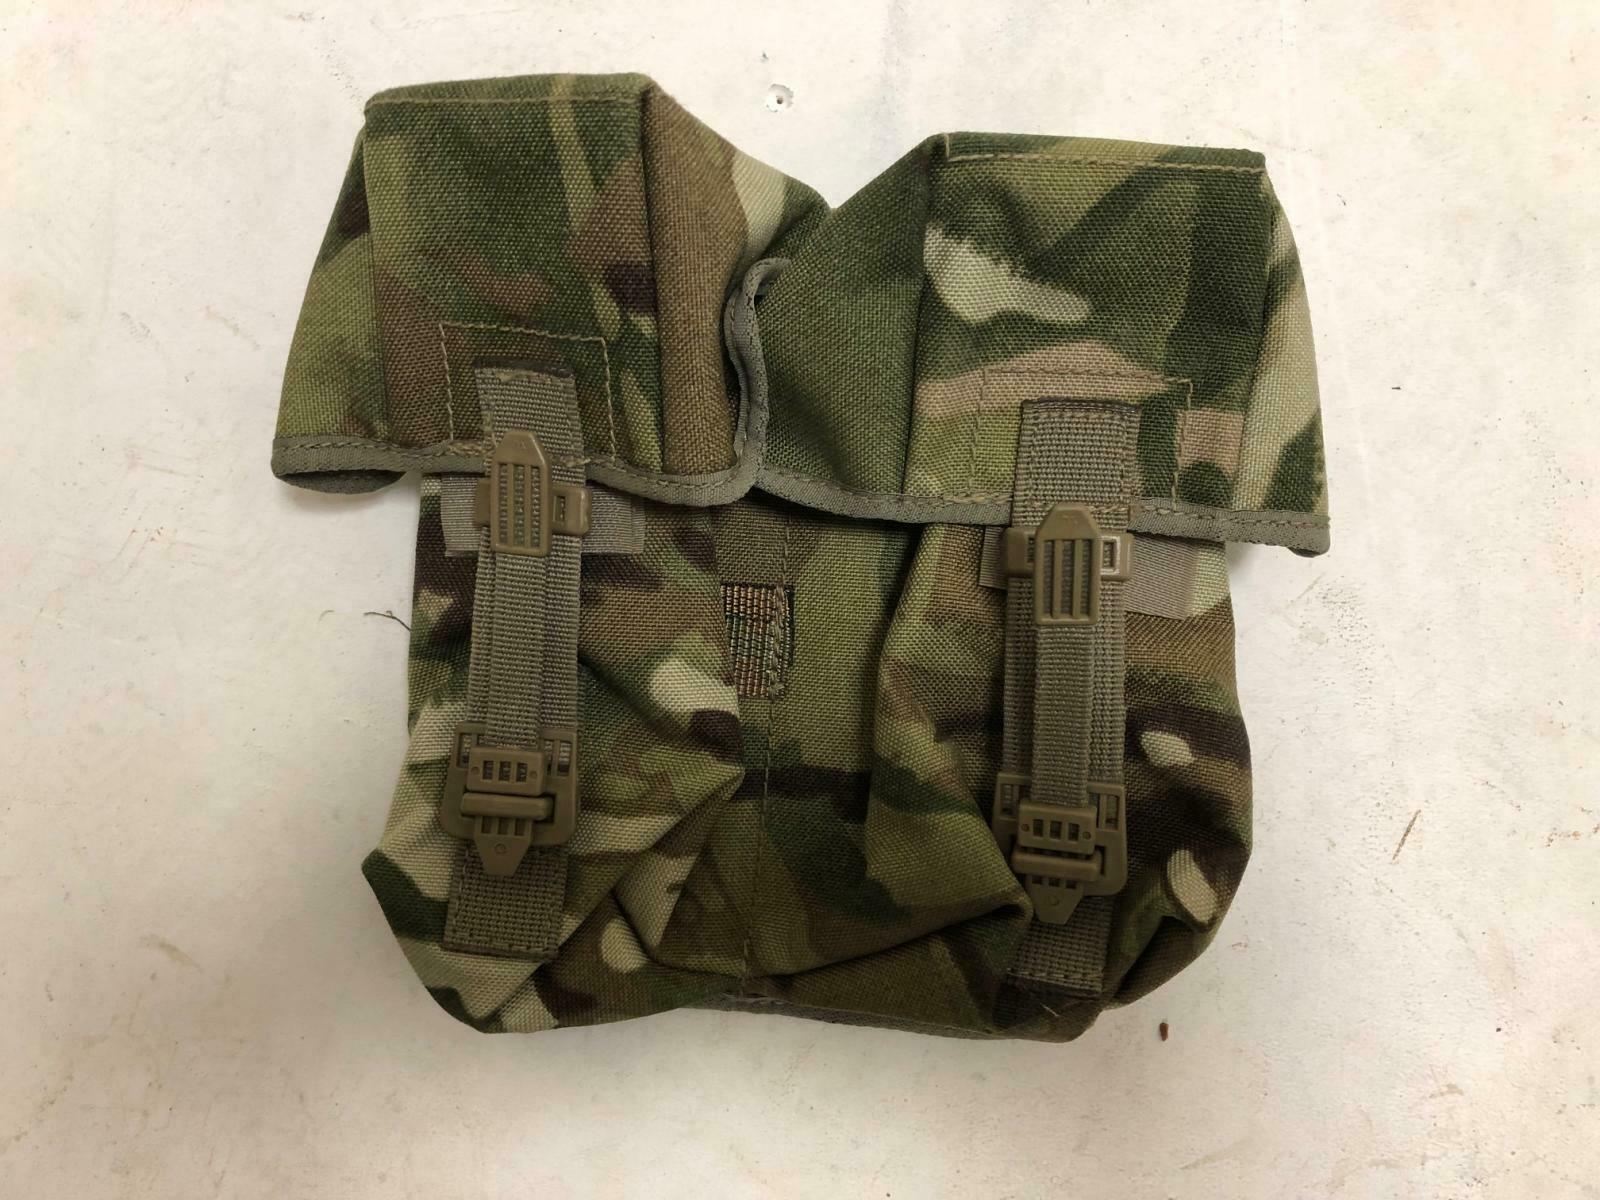 British army surplus MTP camouflage double ammo pouch